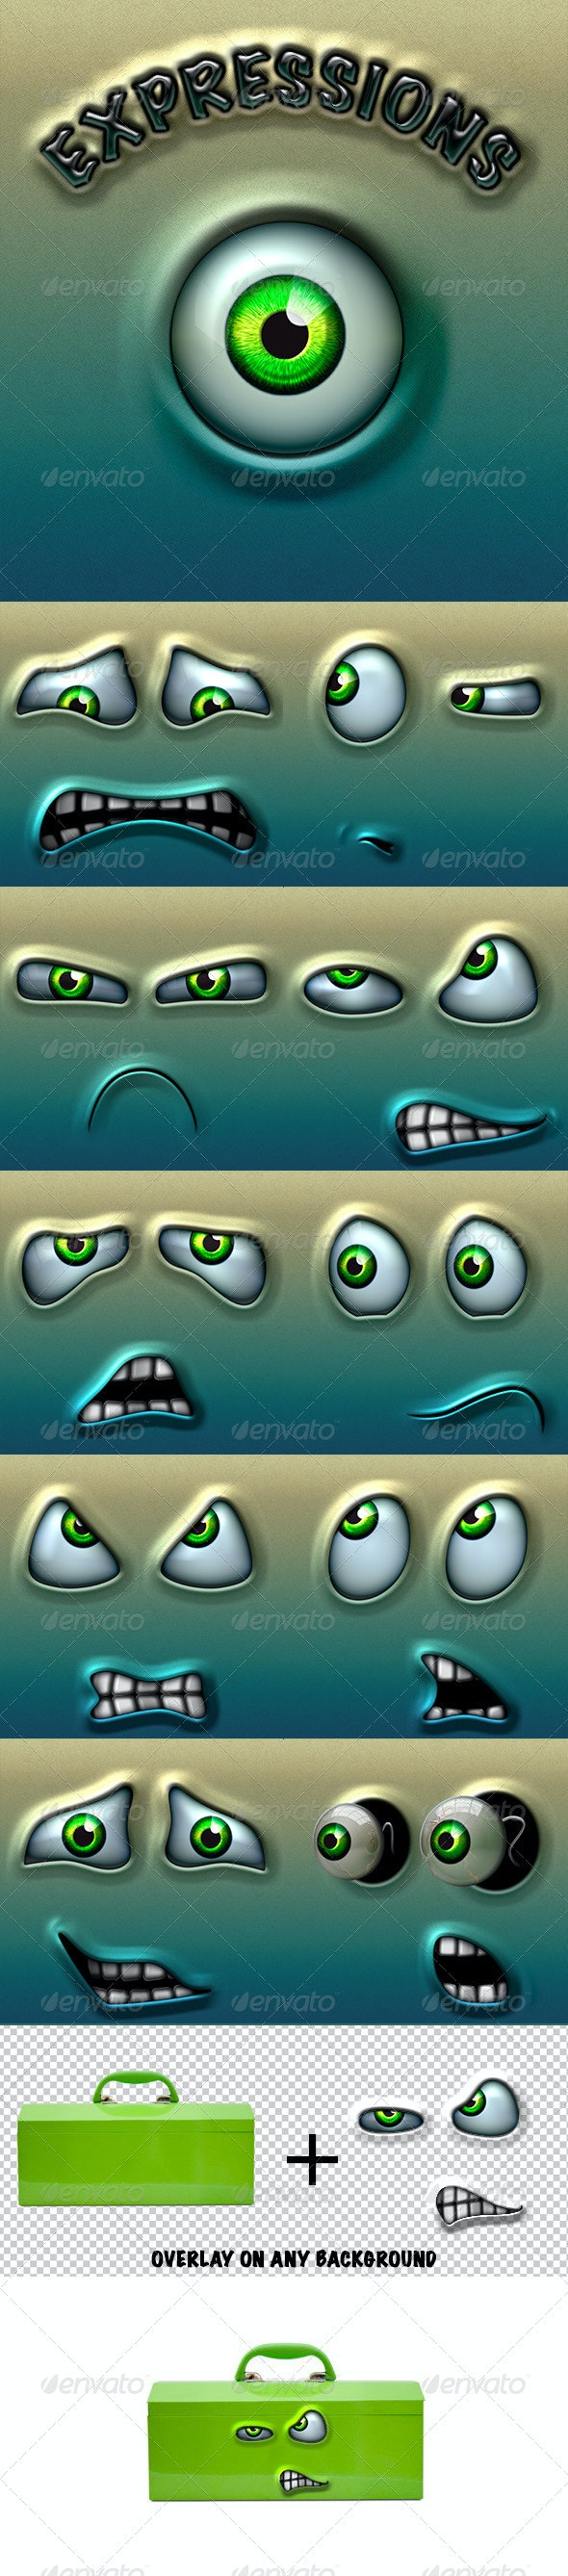 Character Expressions Pack 3 - Characters Illustrations